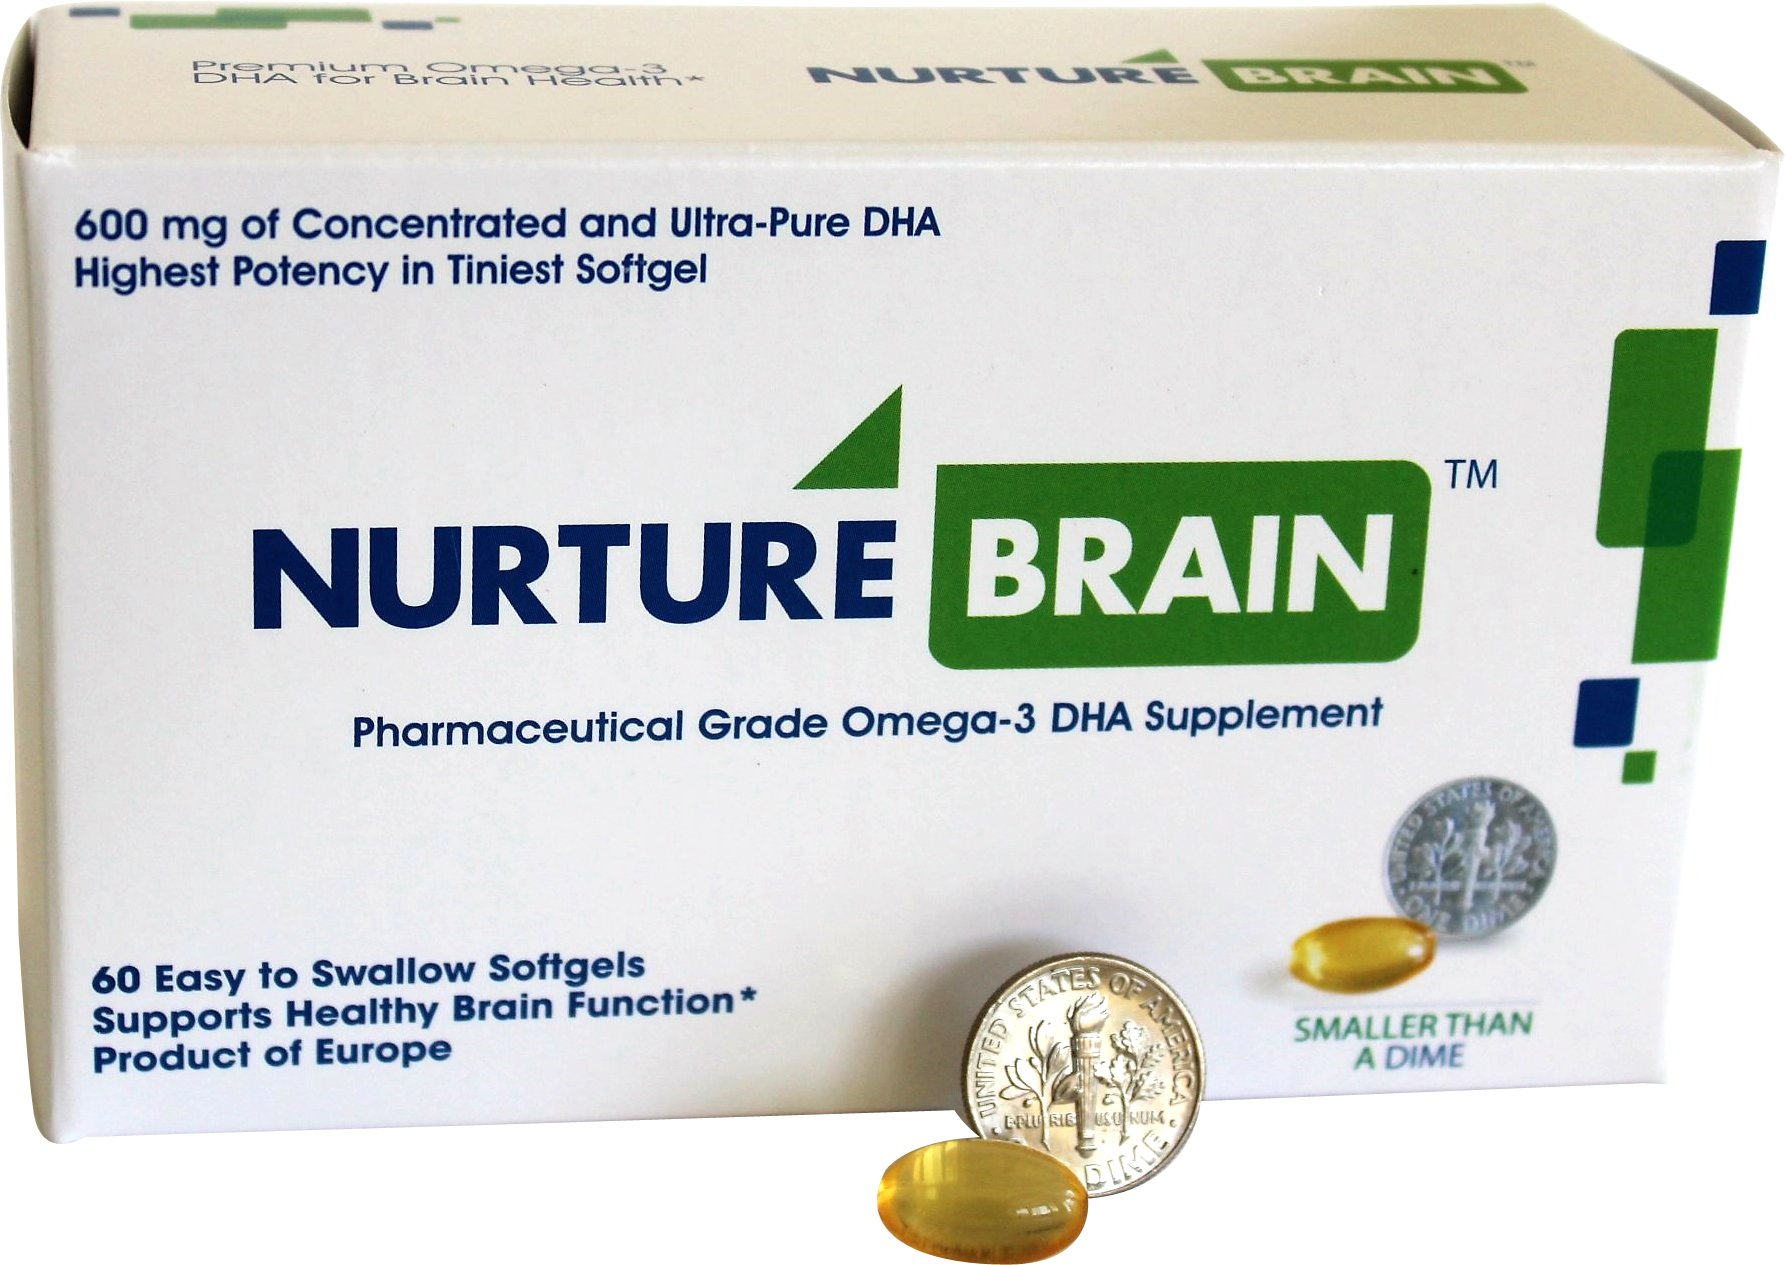 Nurture Brain Concentrated Omega 3 DHA Supplement for Healthy Brain Function - for Men, Women, Teens, Seniors (60 Softgels 600 mg DHA per dose) by Nurture Brain